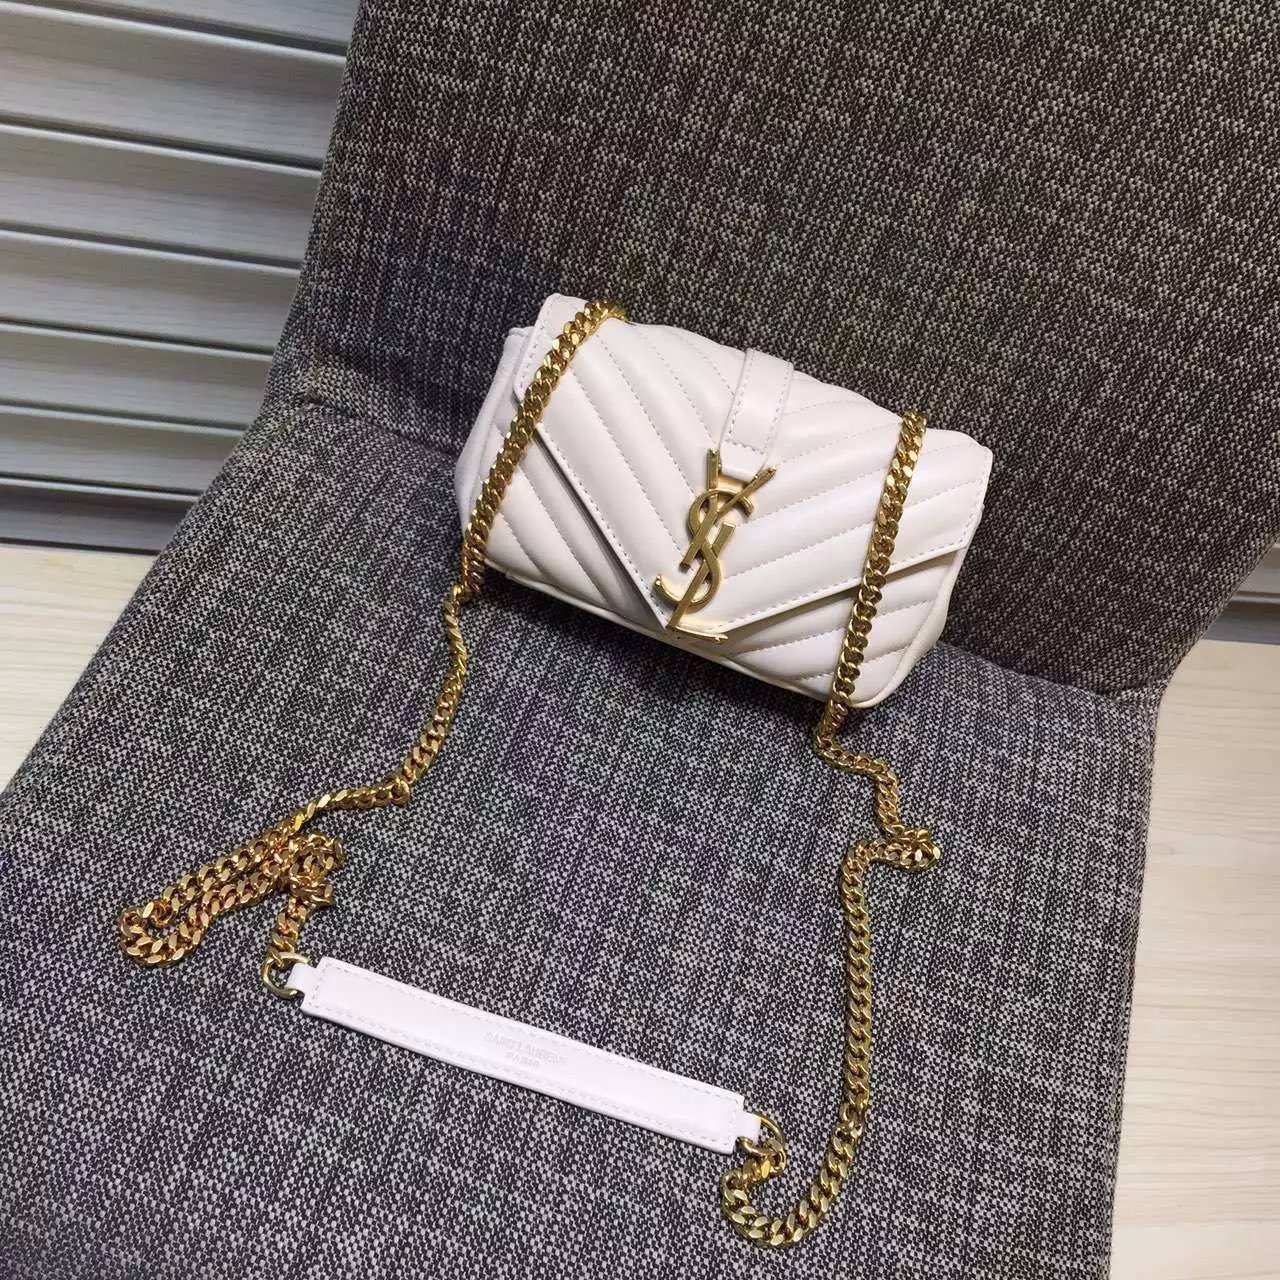 2016 Cheap YSL Outsale with Free Shipping-Saint Laurent Classic Baby Monogram Satchel in White Matelasse Leather with Gold Hardware